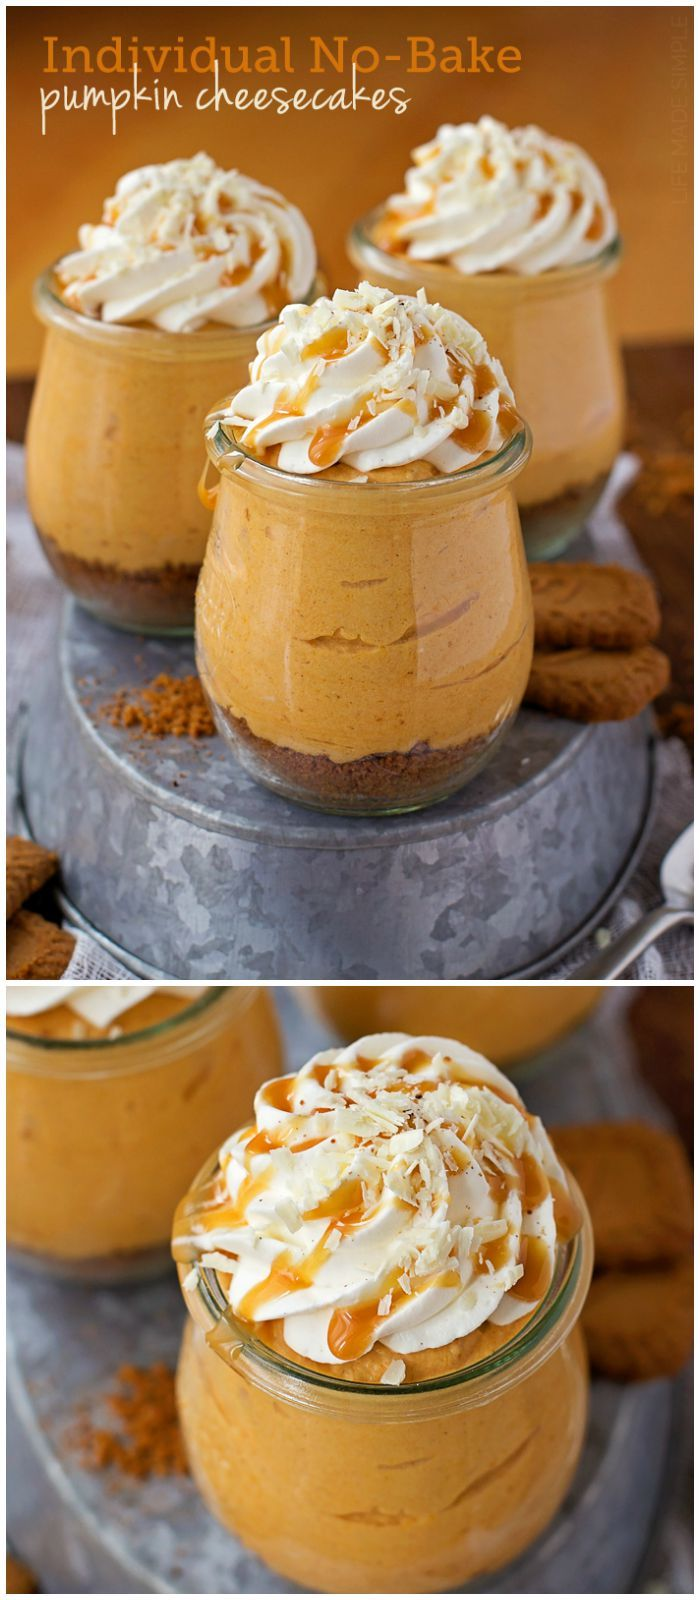 Individual No-Bake Pumpkin Cheesecakes perfect for the holidays!! It will be a…